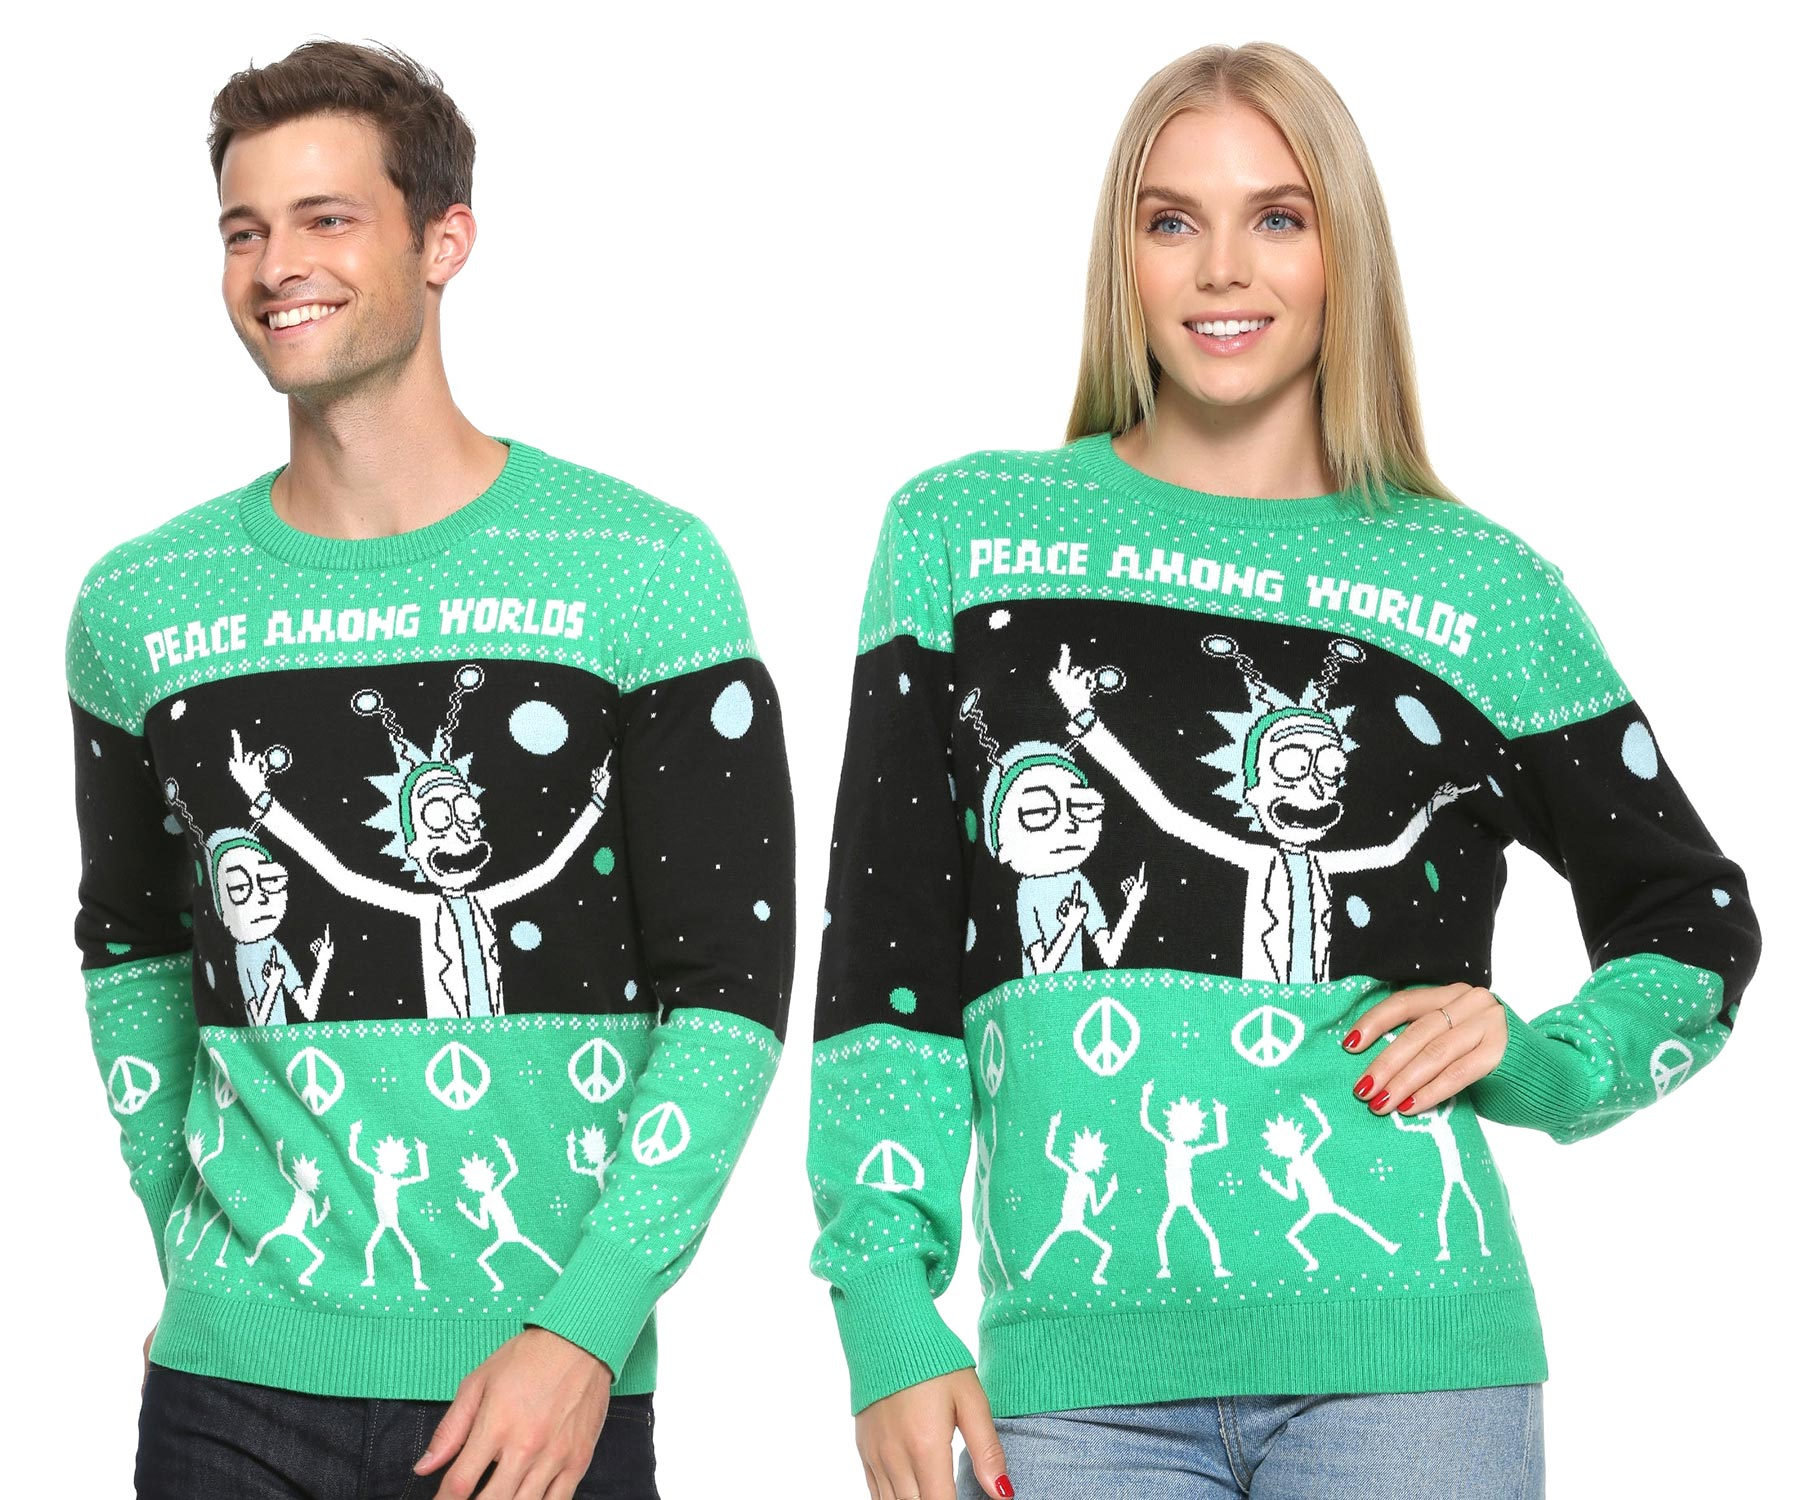 Rick And Morty Ugly Christmas Sweater.Rick And Morty World Peace Holiday Sweater